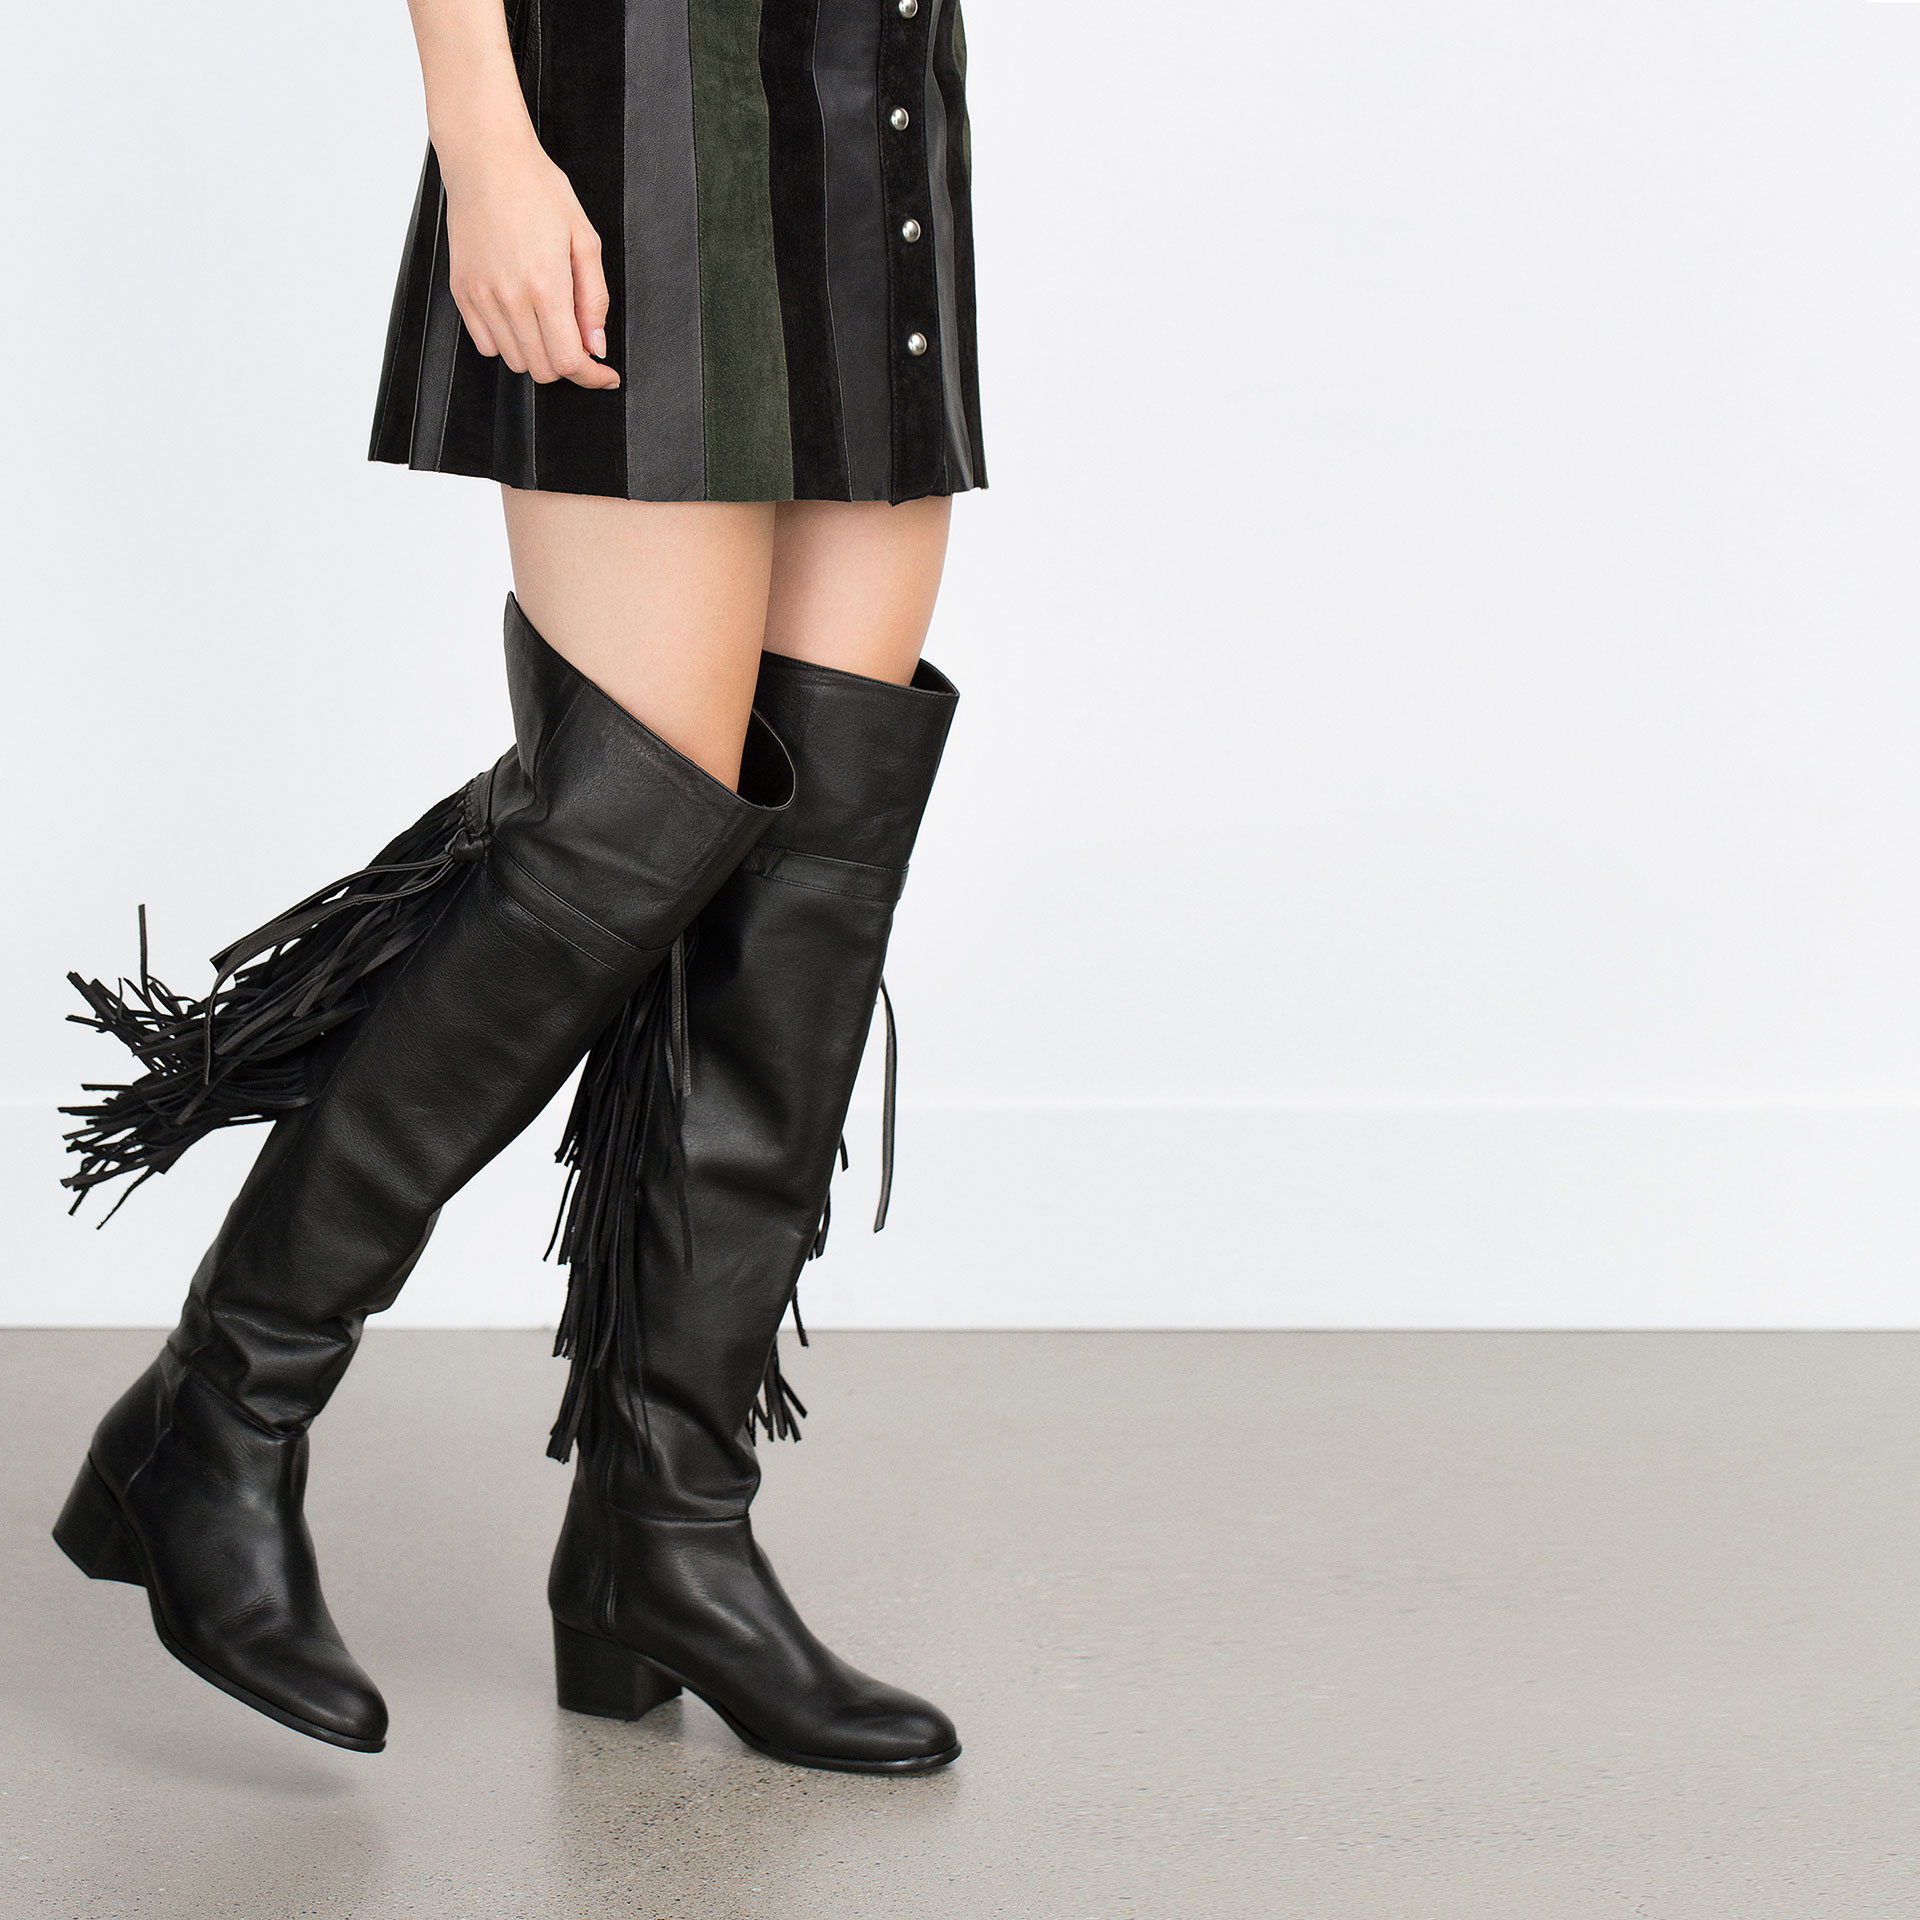 Zara Flat Leather Boots With Fringe in Black | Lyst